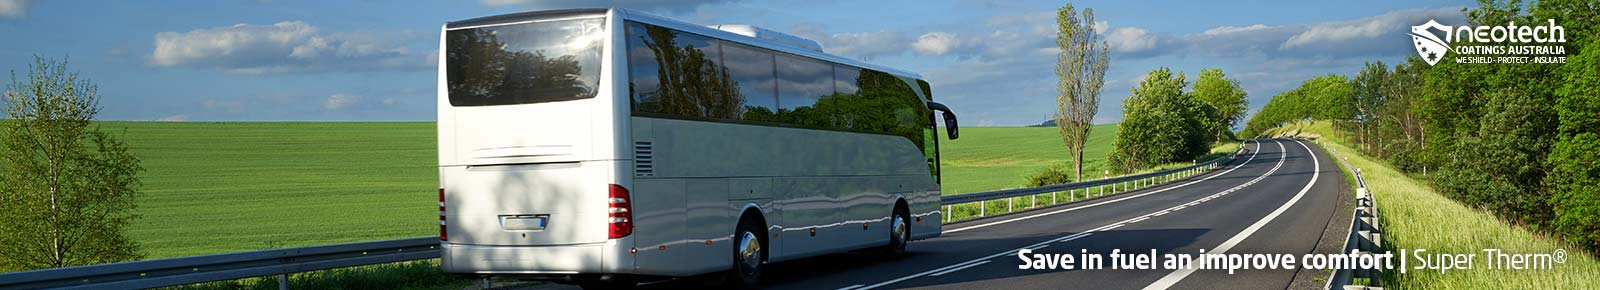 NEOtech Coatings | Super Therm® fuel savings with buses